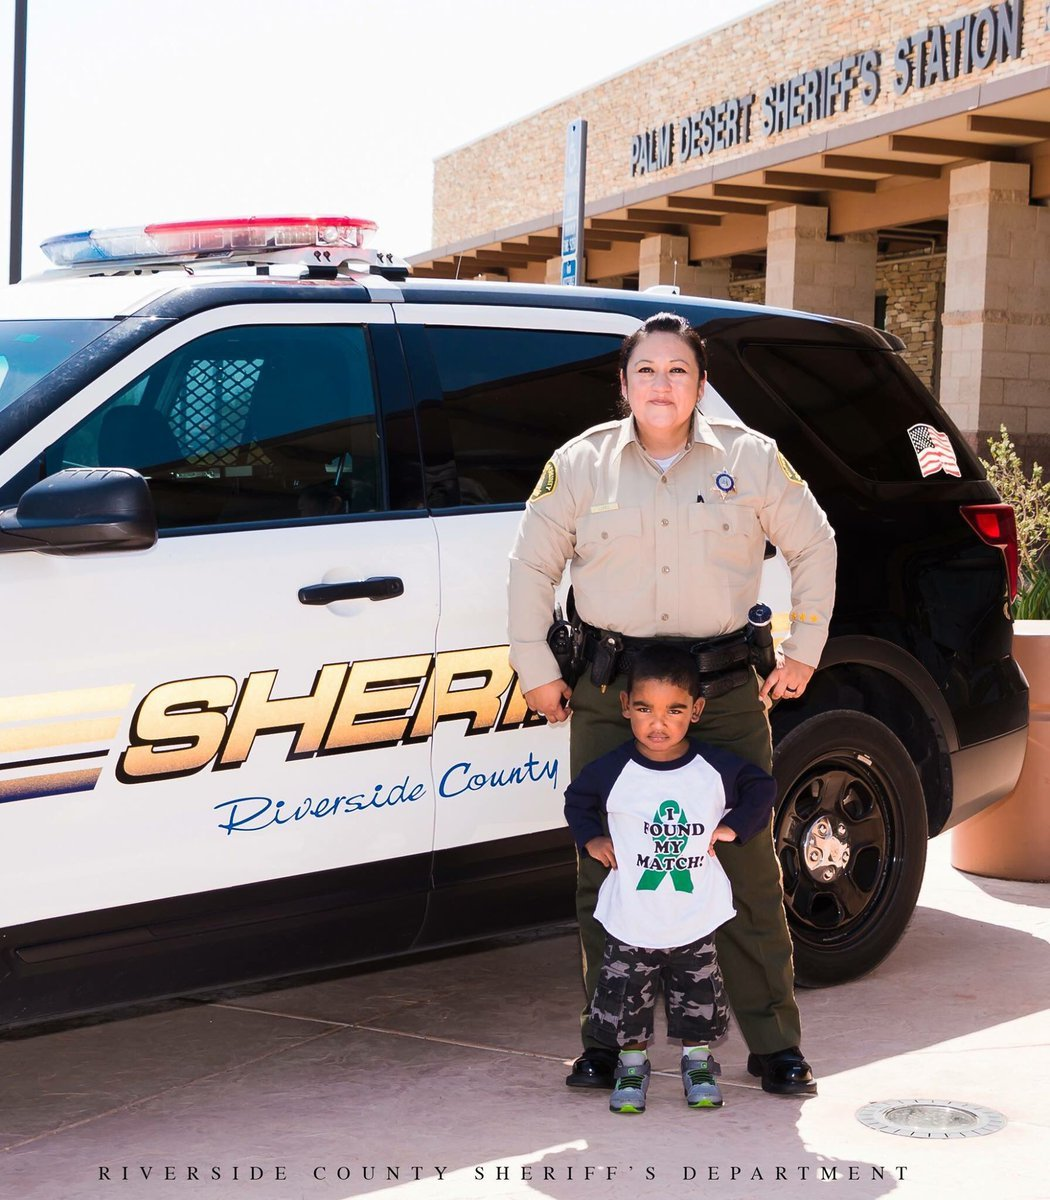 Riverside County Sheriff's Deputy Alicia Lopez will be donating her kidney to Matthew Castleberry Jr. ,3, the son of a former Deputy Sheriff.